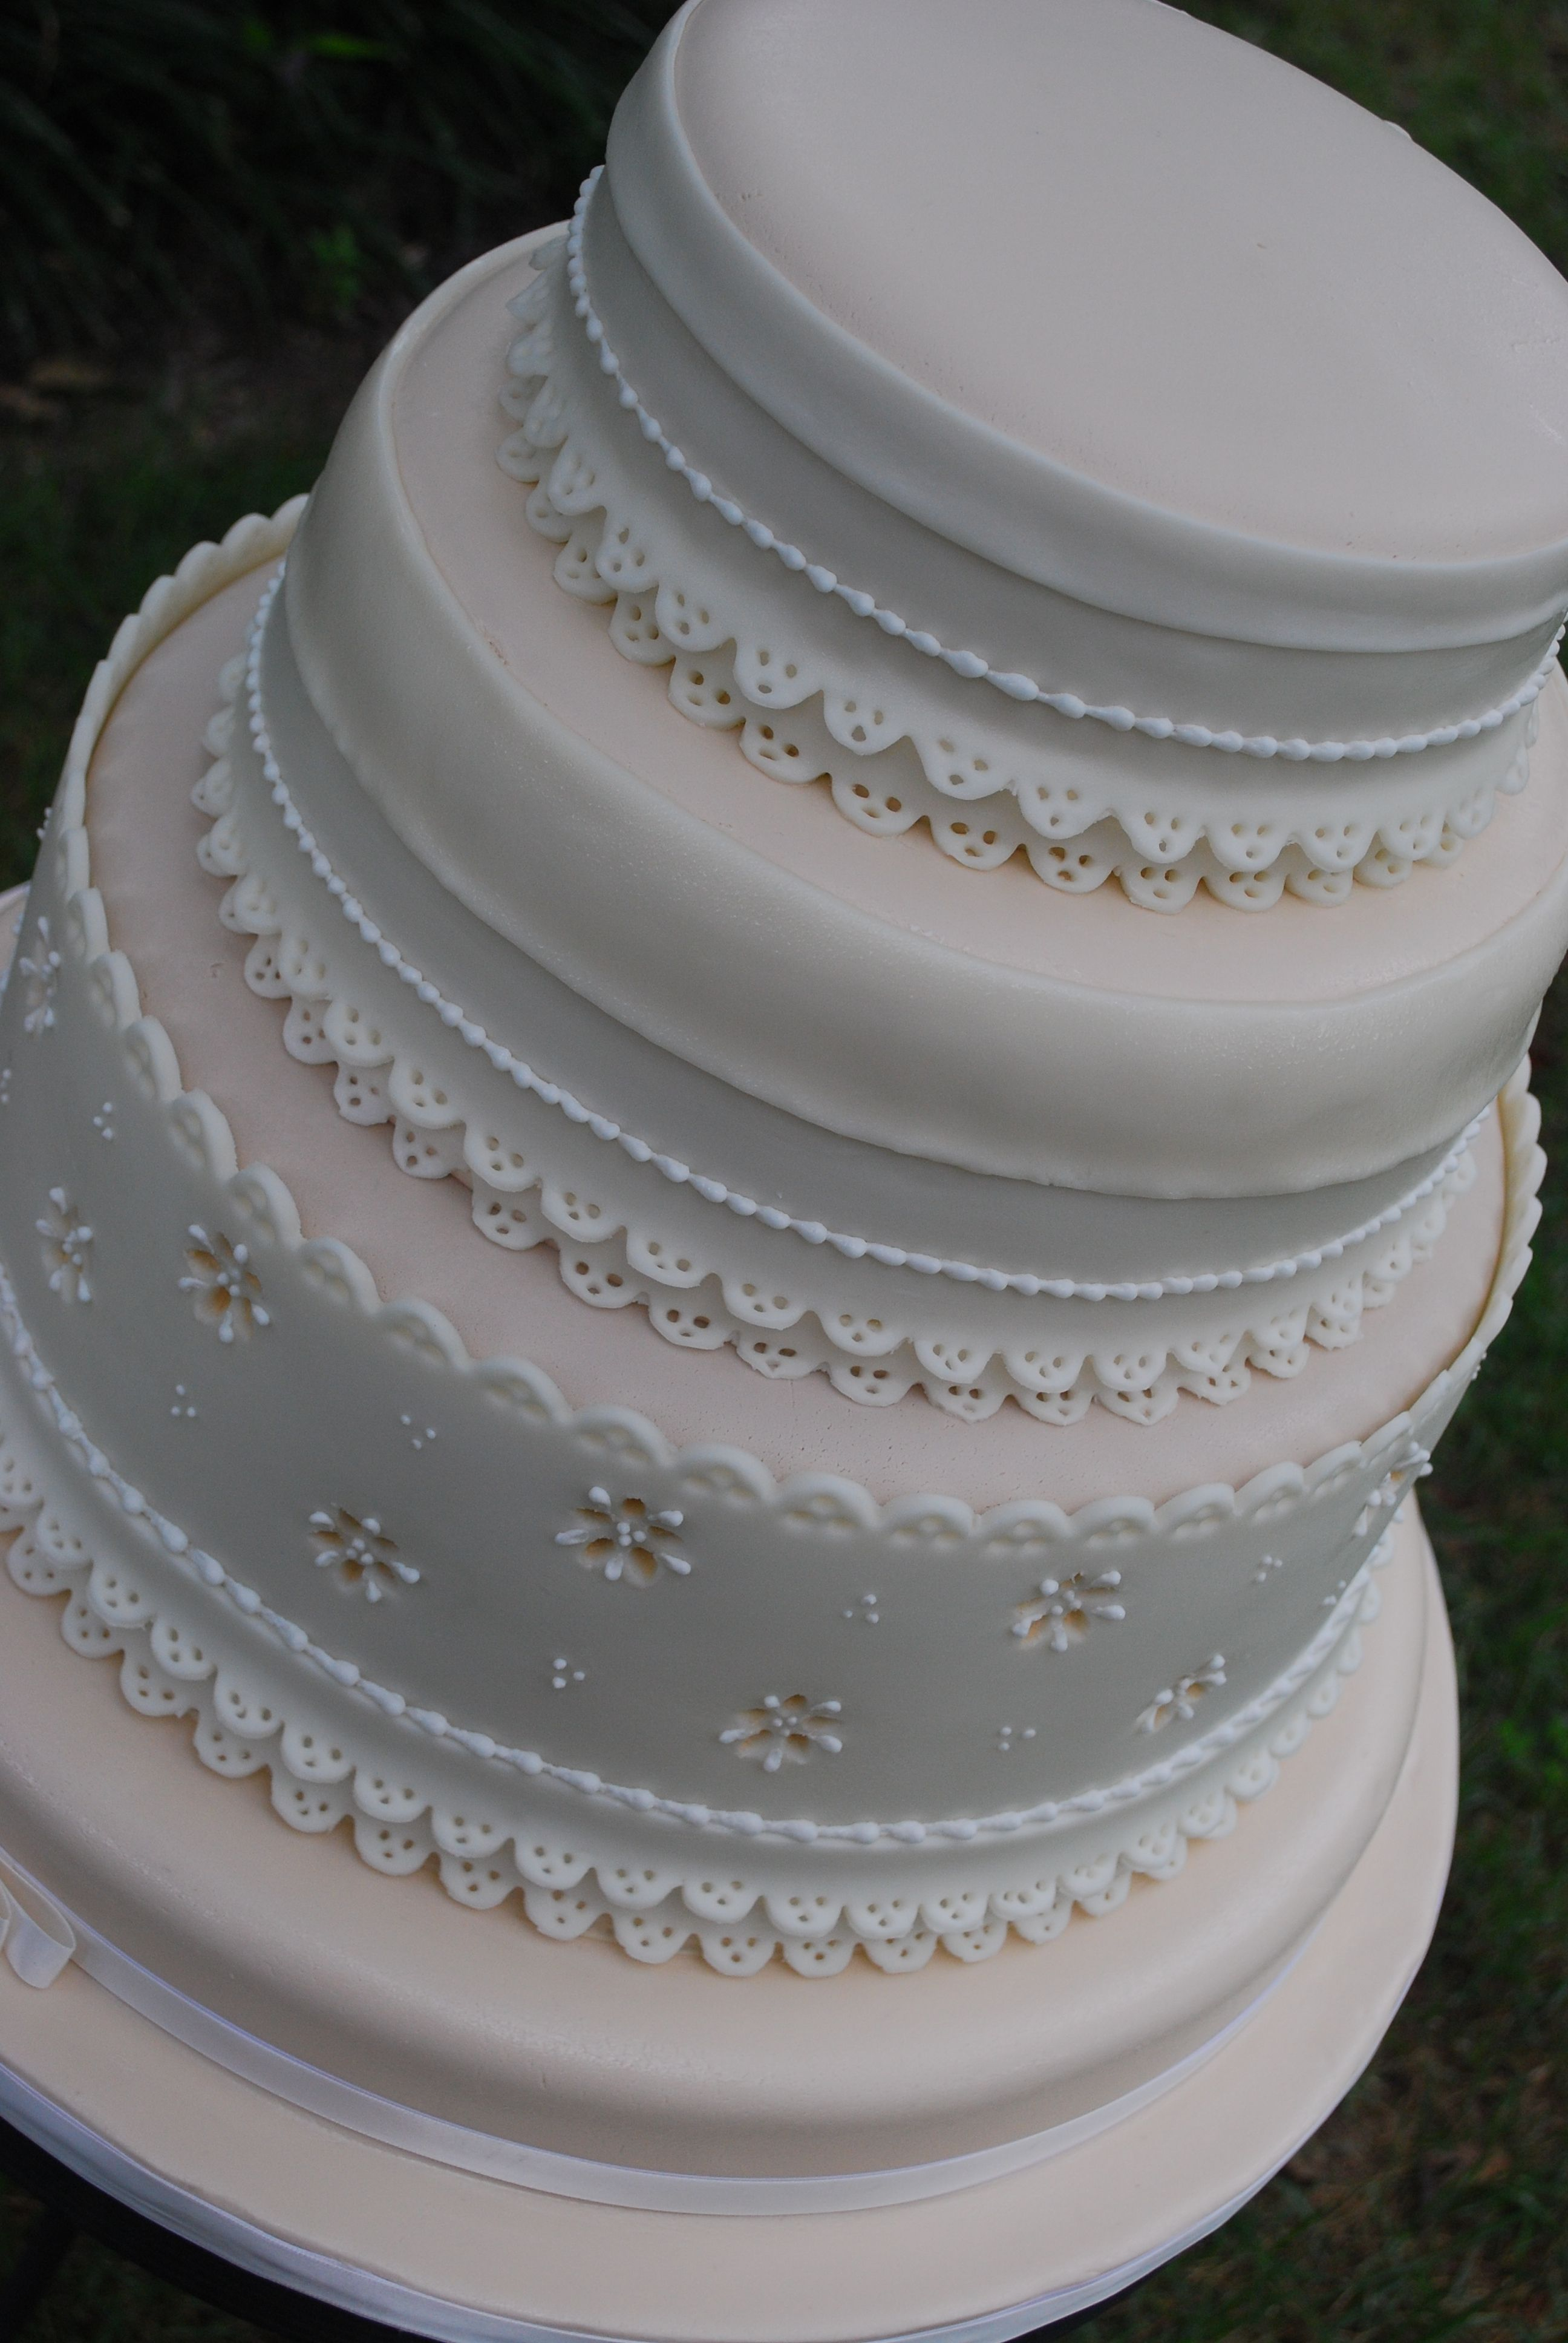 Eyelet Lace wedding cake This cake was covered in an ivory